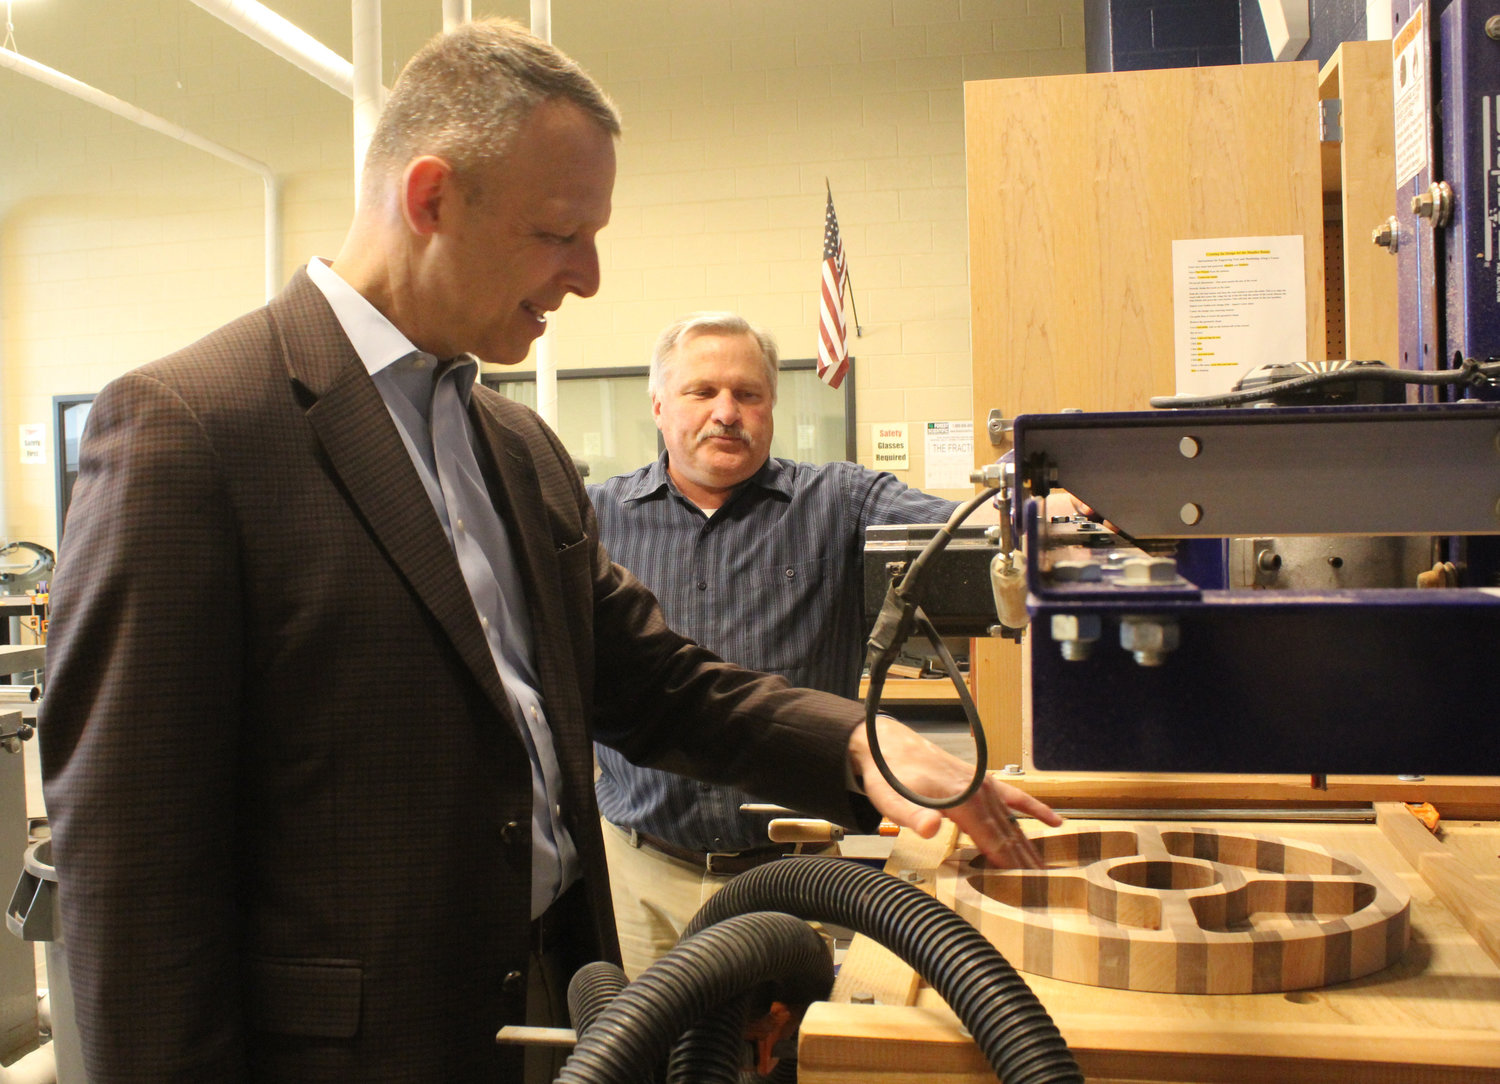 Teacher Robert Stitt shows Congressman Scott Perry the industrial technology equipment during a tour of MAHS on May 3.